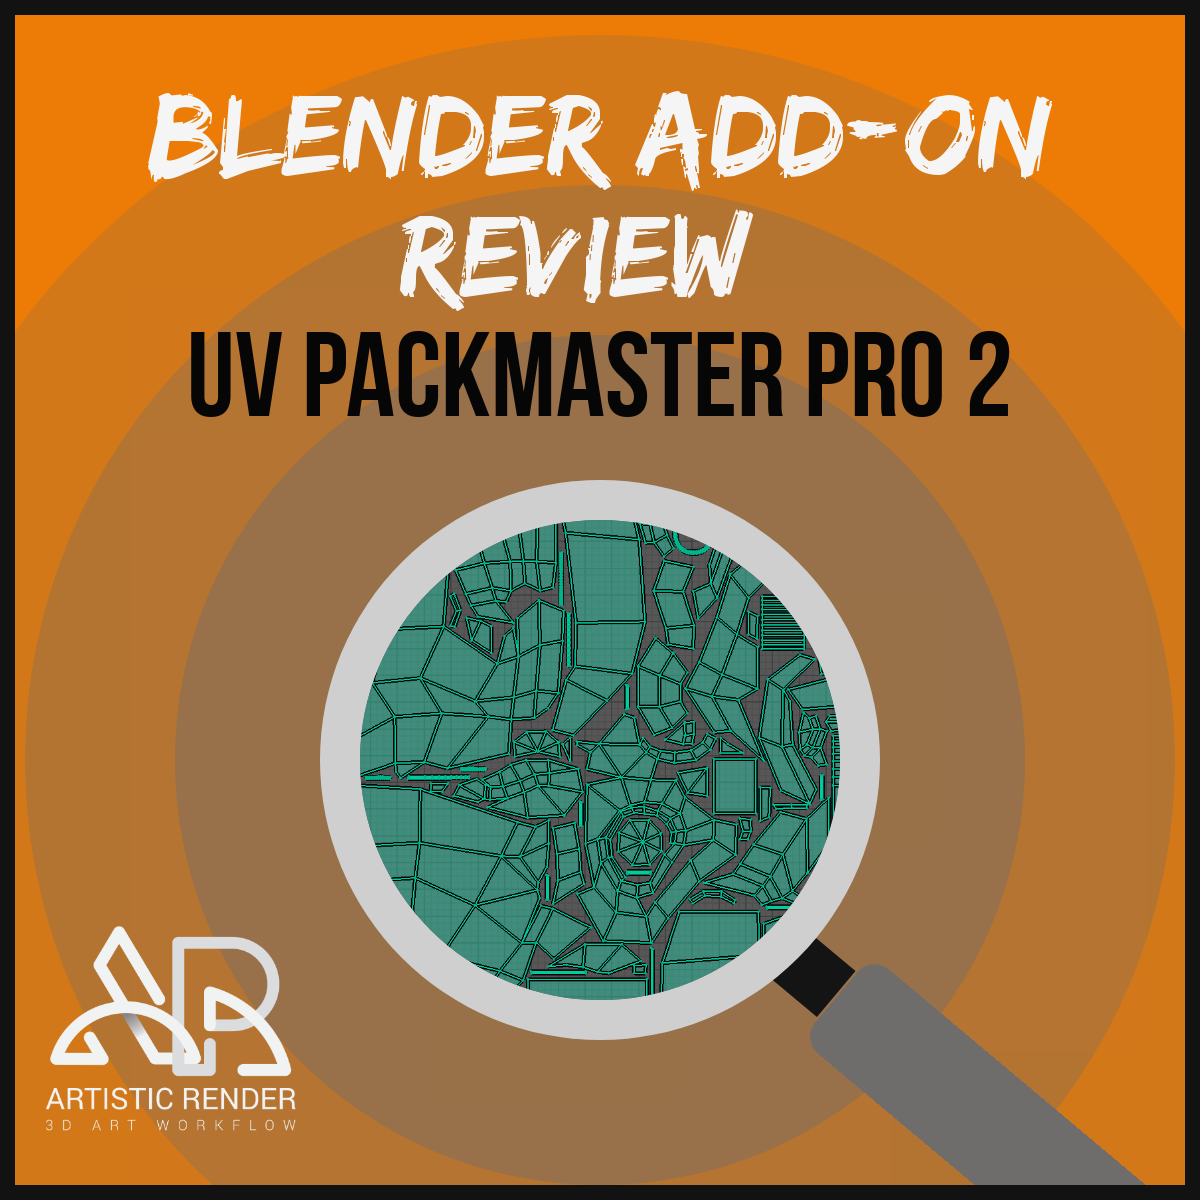 blender addon review about uv packmaster pro 2, feature image